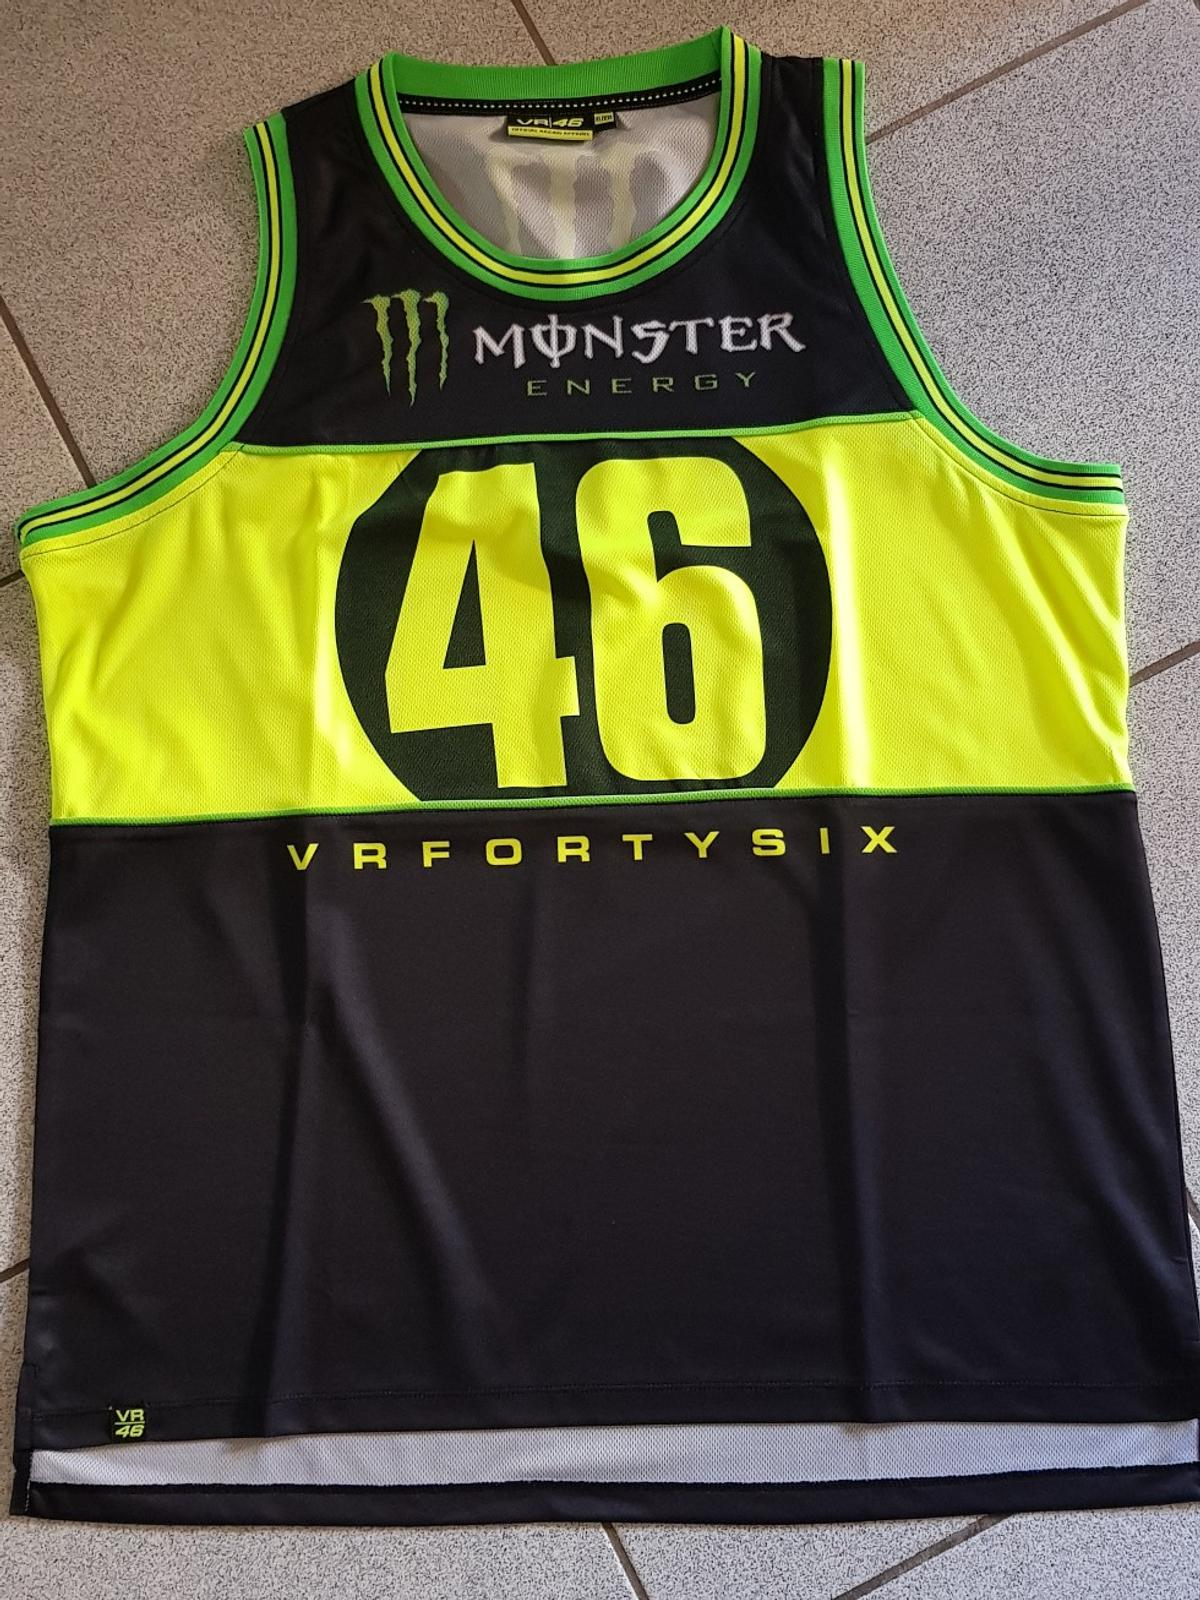 Valentino Rossi Shirt In 76461 Muggensturm For 20 00 For Sale Shpock